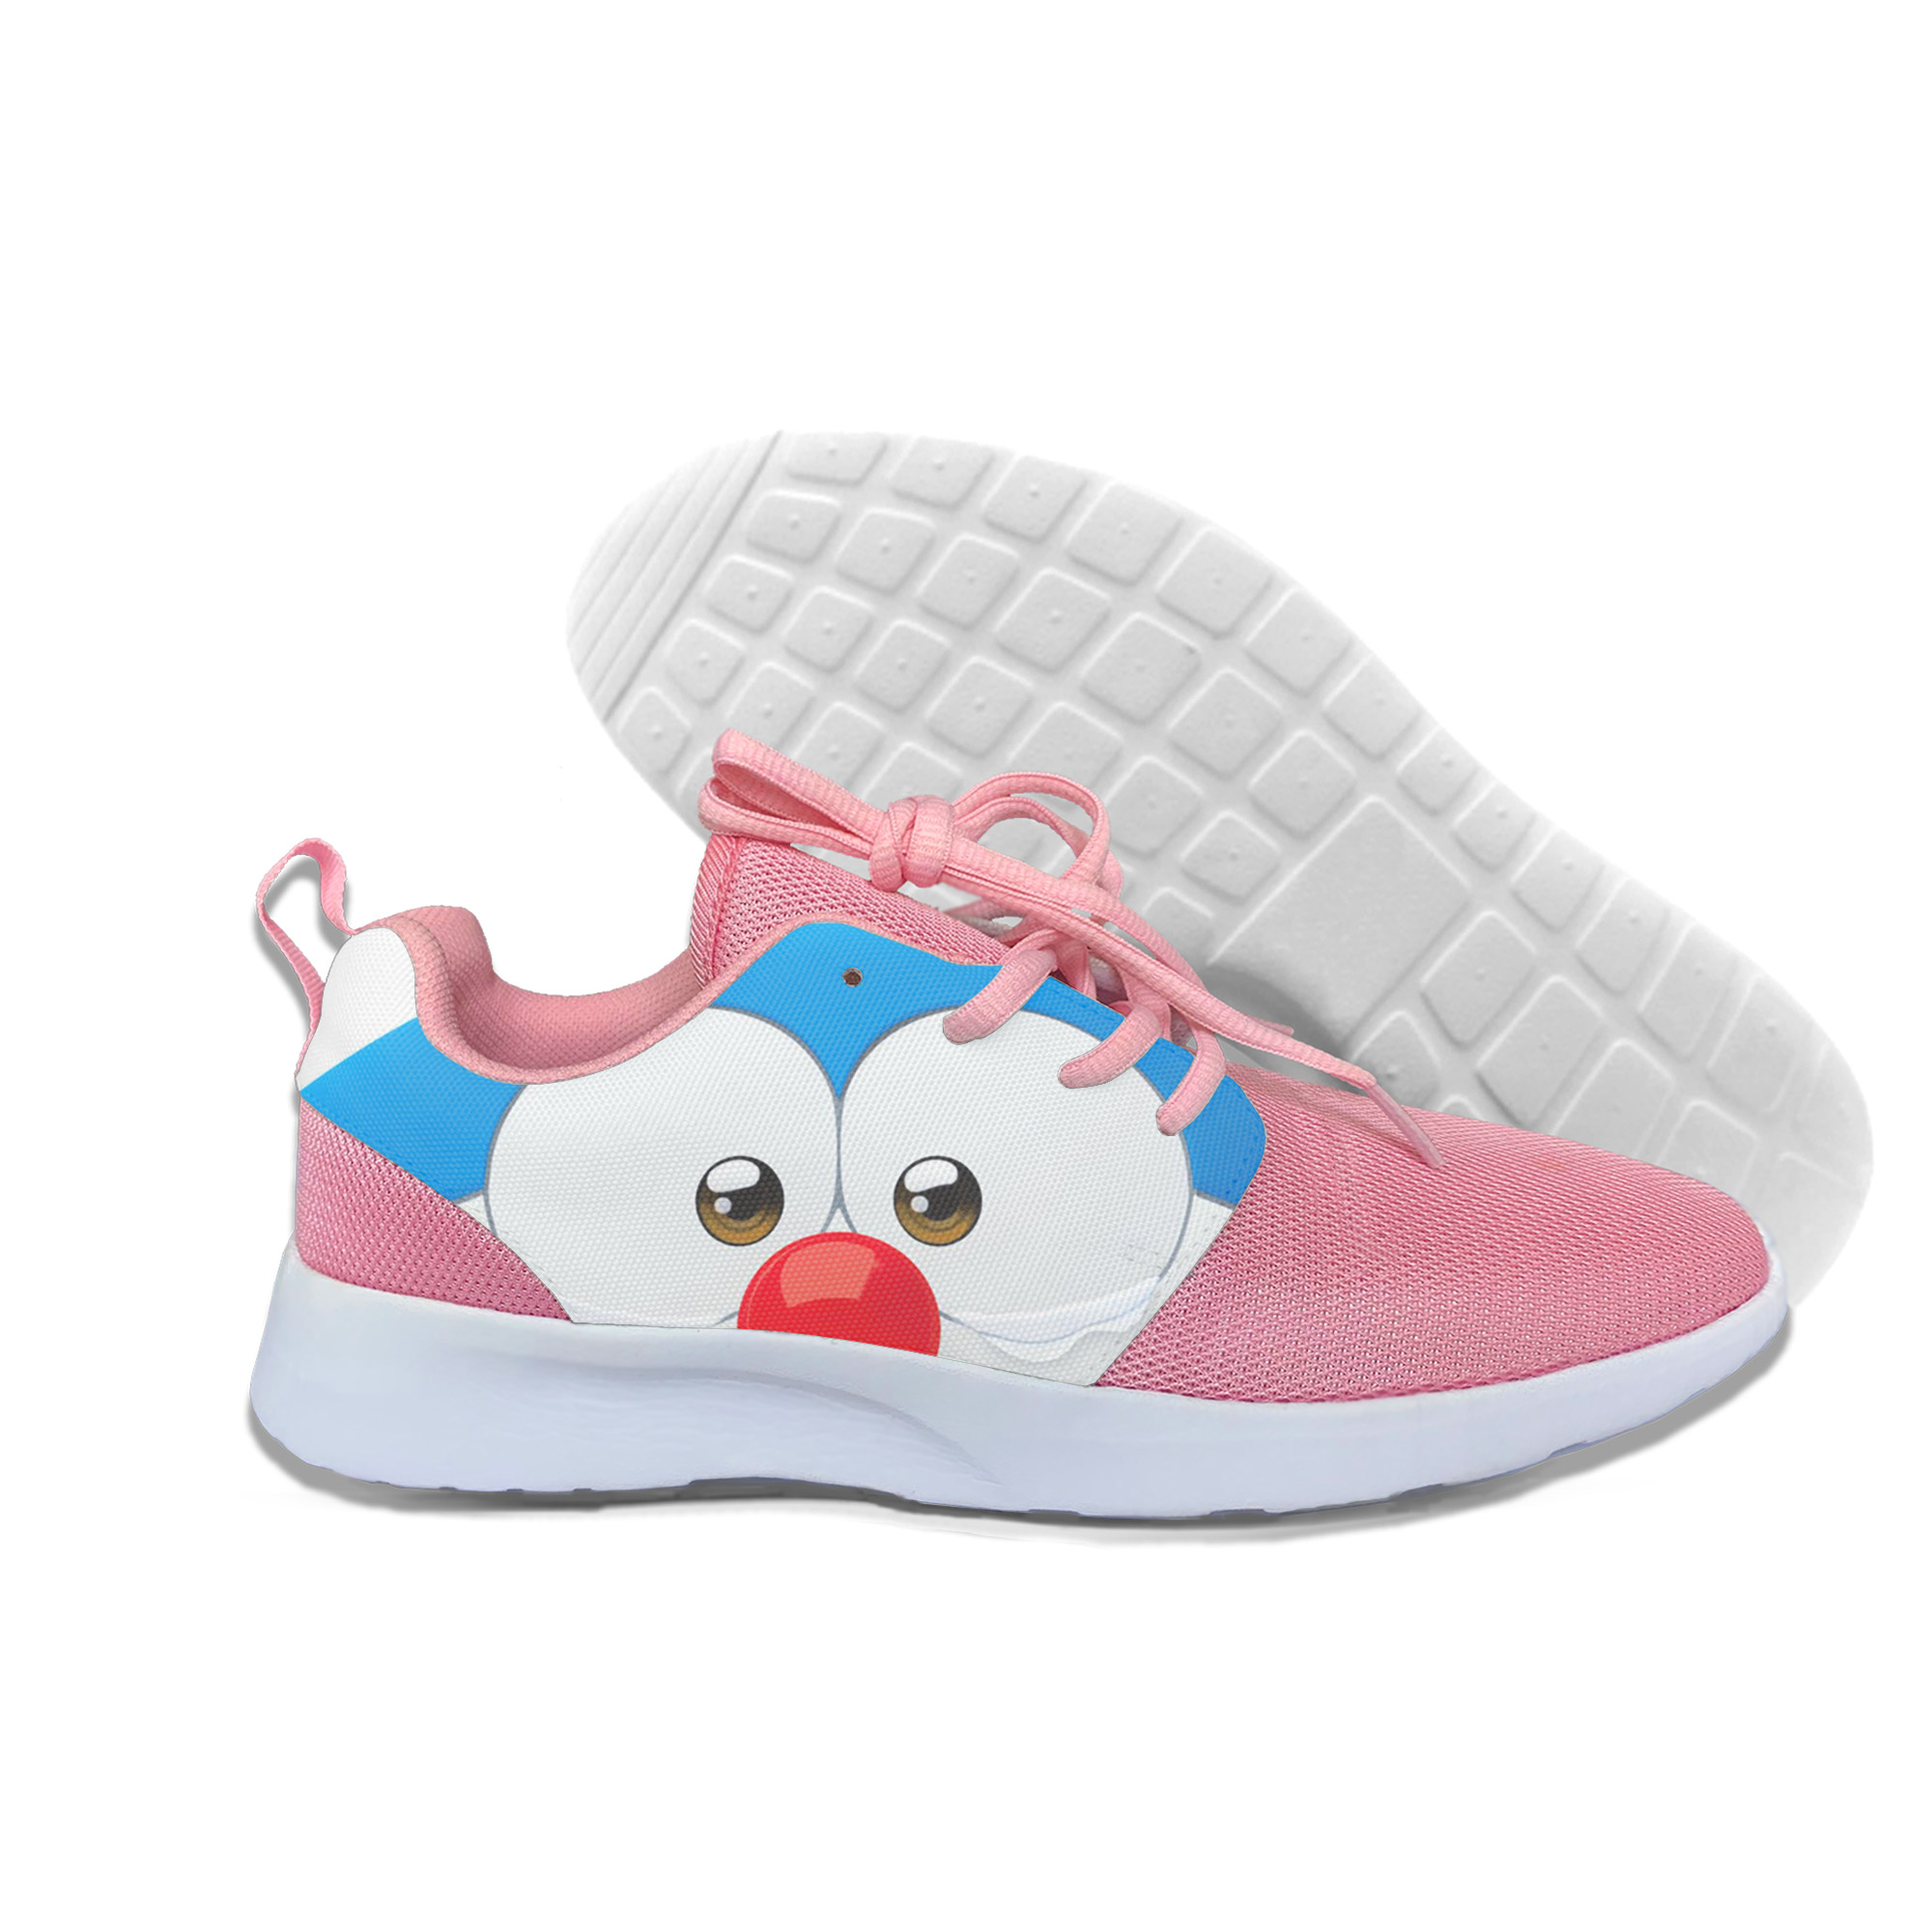 Top 10 Largest Doraemon Shoes List And Get Free Shipping I59dljlk